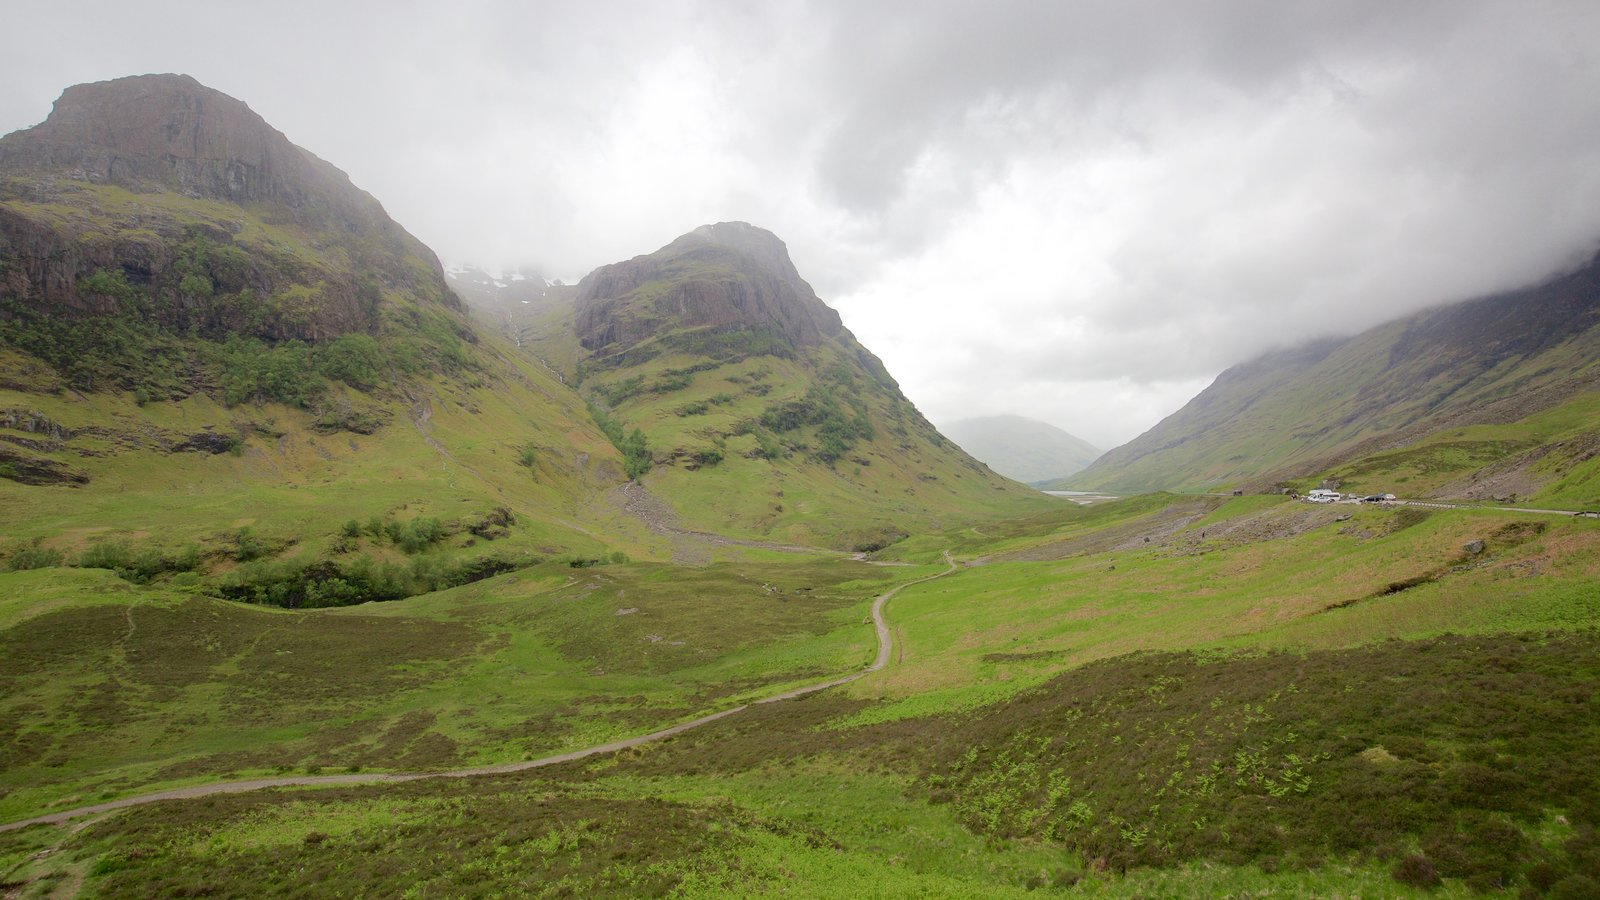 Glencoe featuring mountains and tranquil scenes